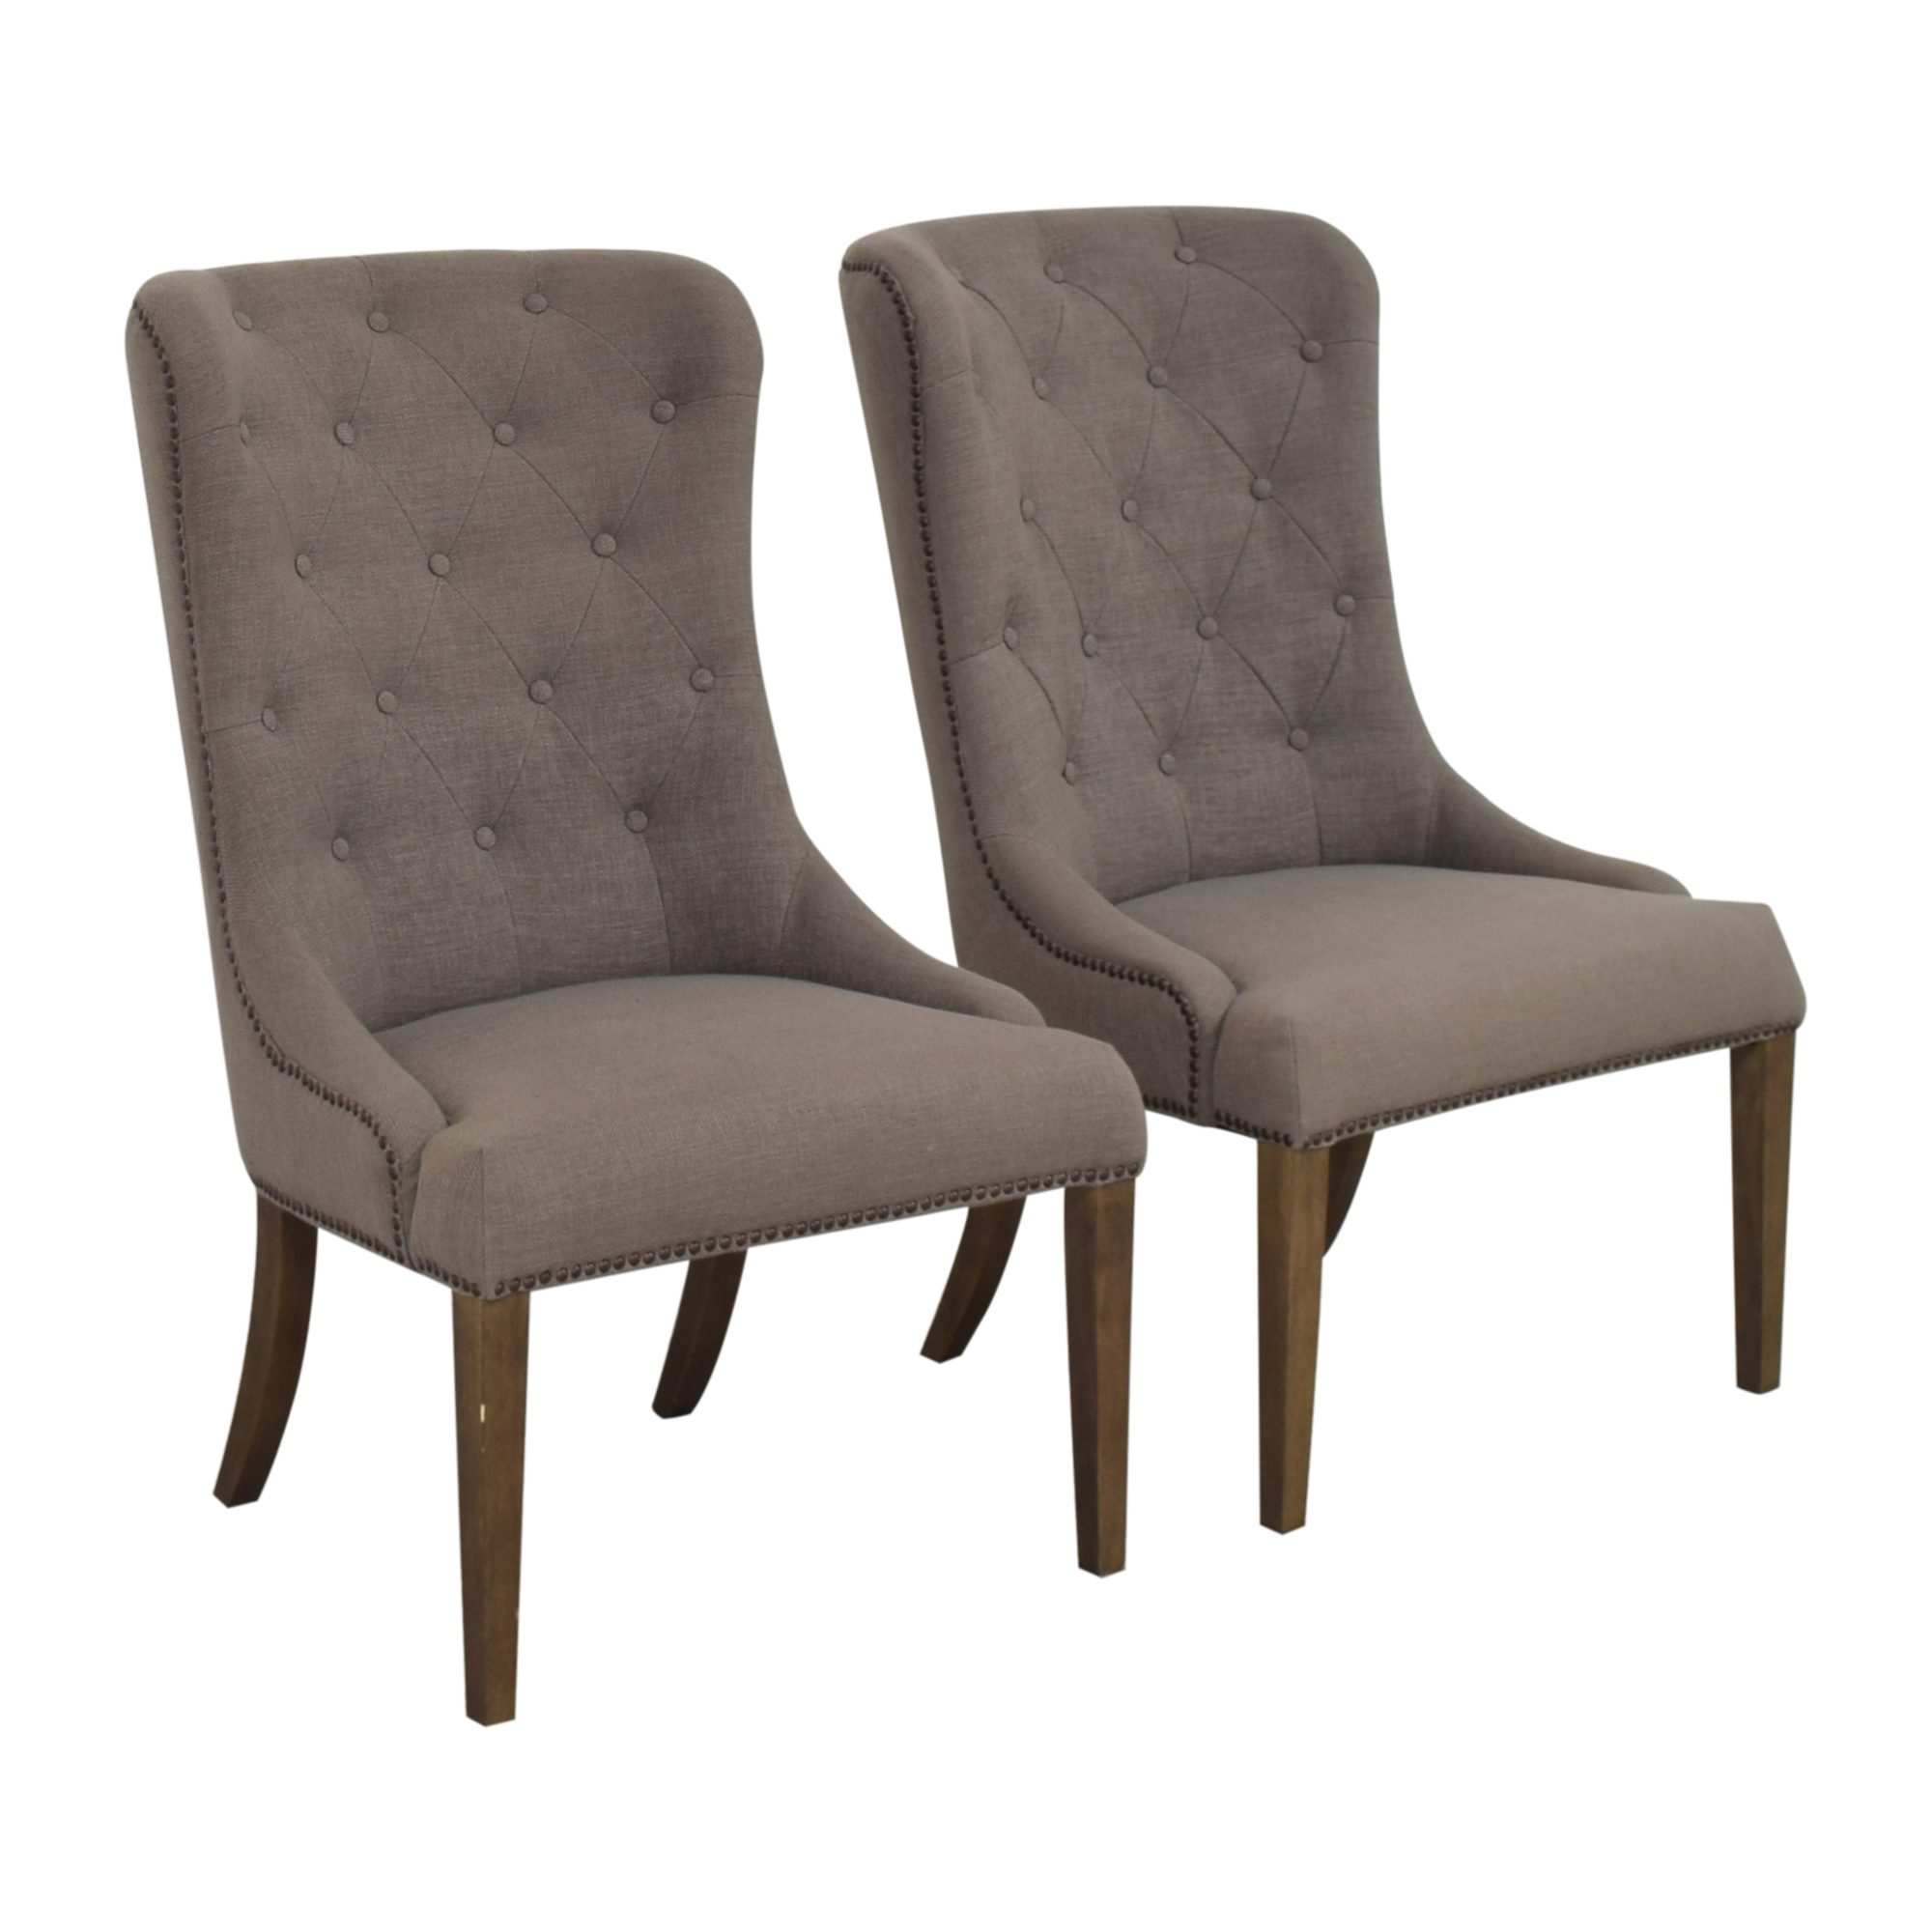 Four Hands Four Hands Elouise Dining Chairs nyc